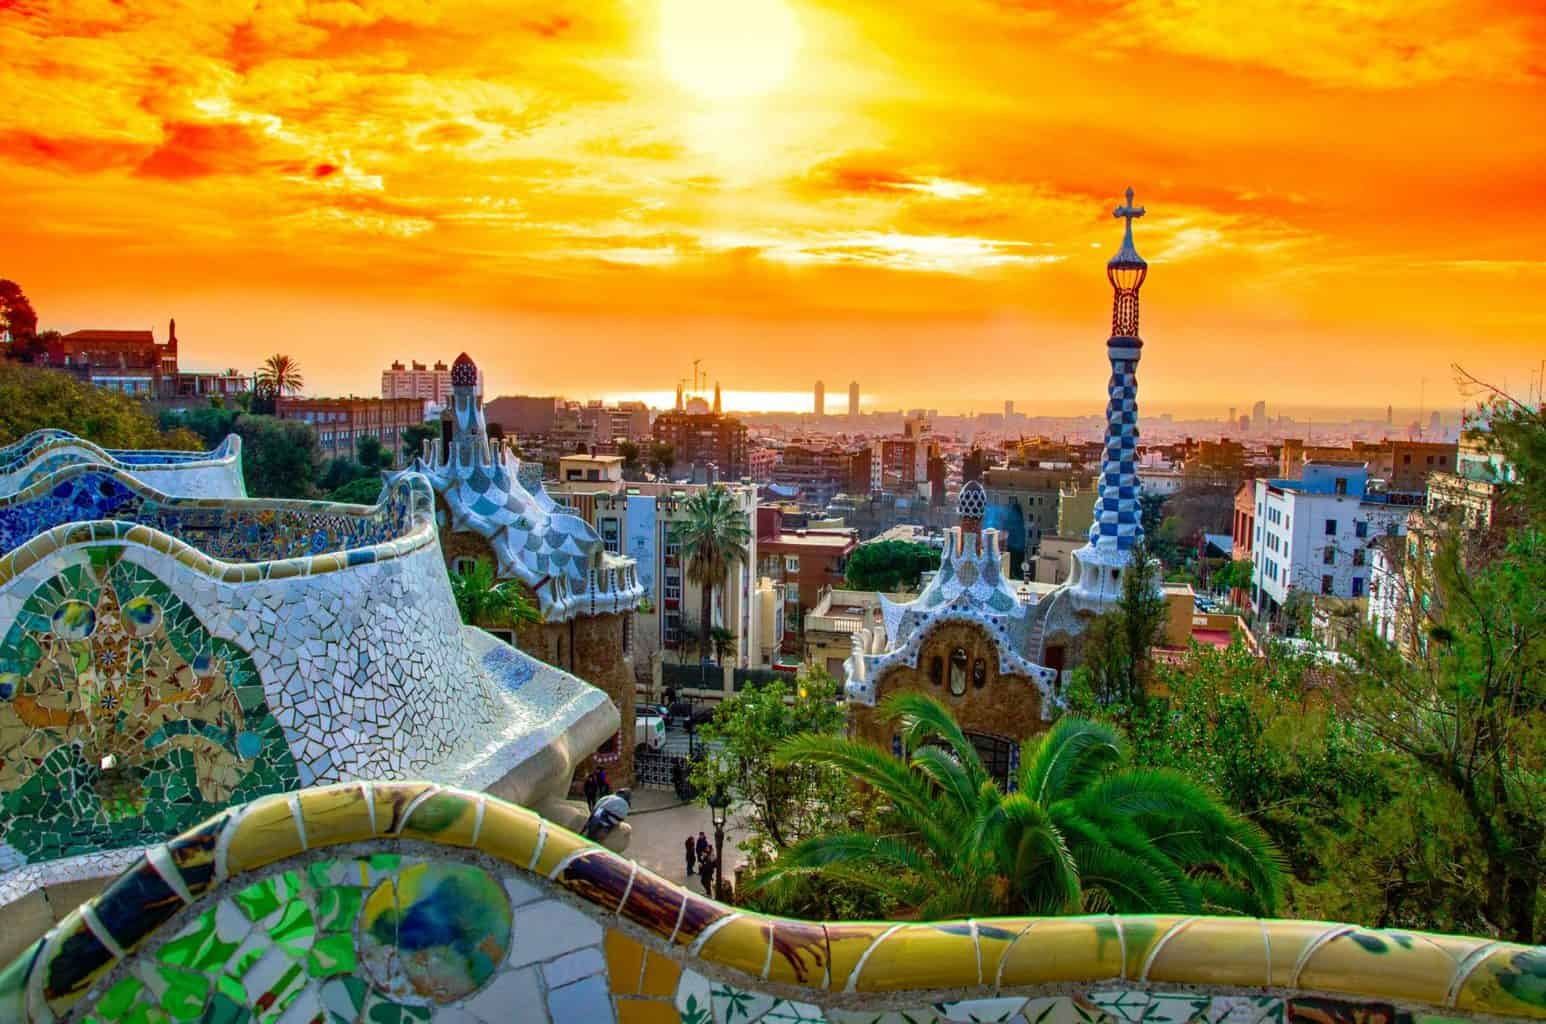 Barcelona Parc Guell - beautiful places to watch the sunset